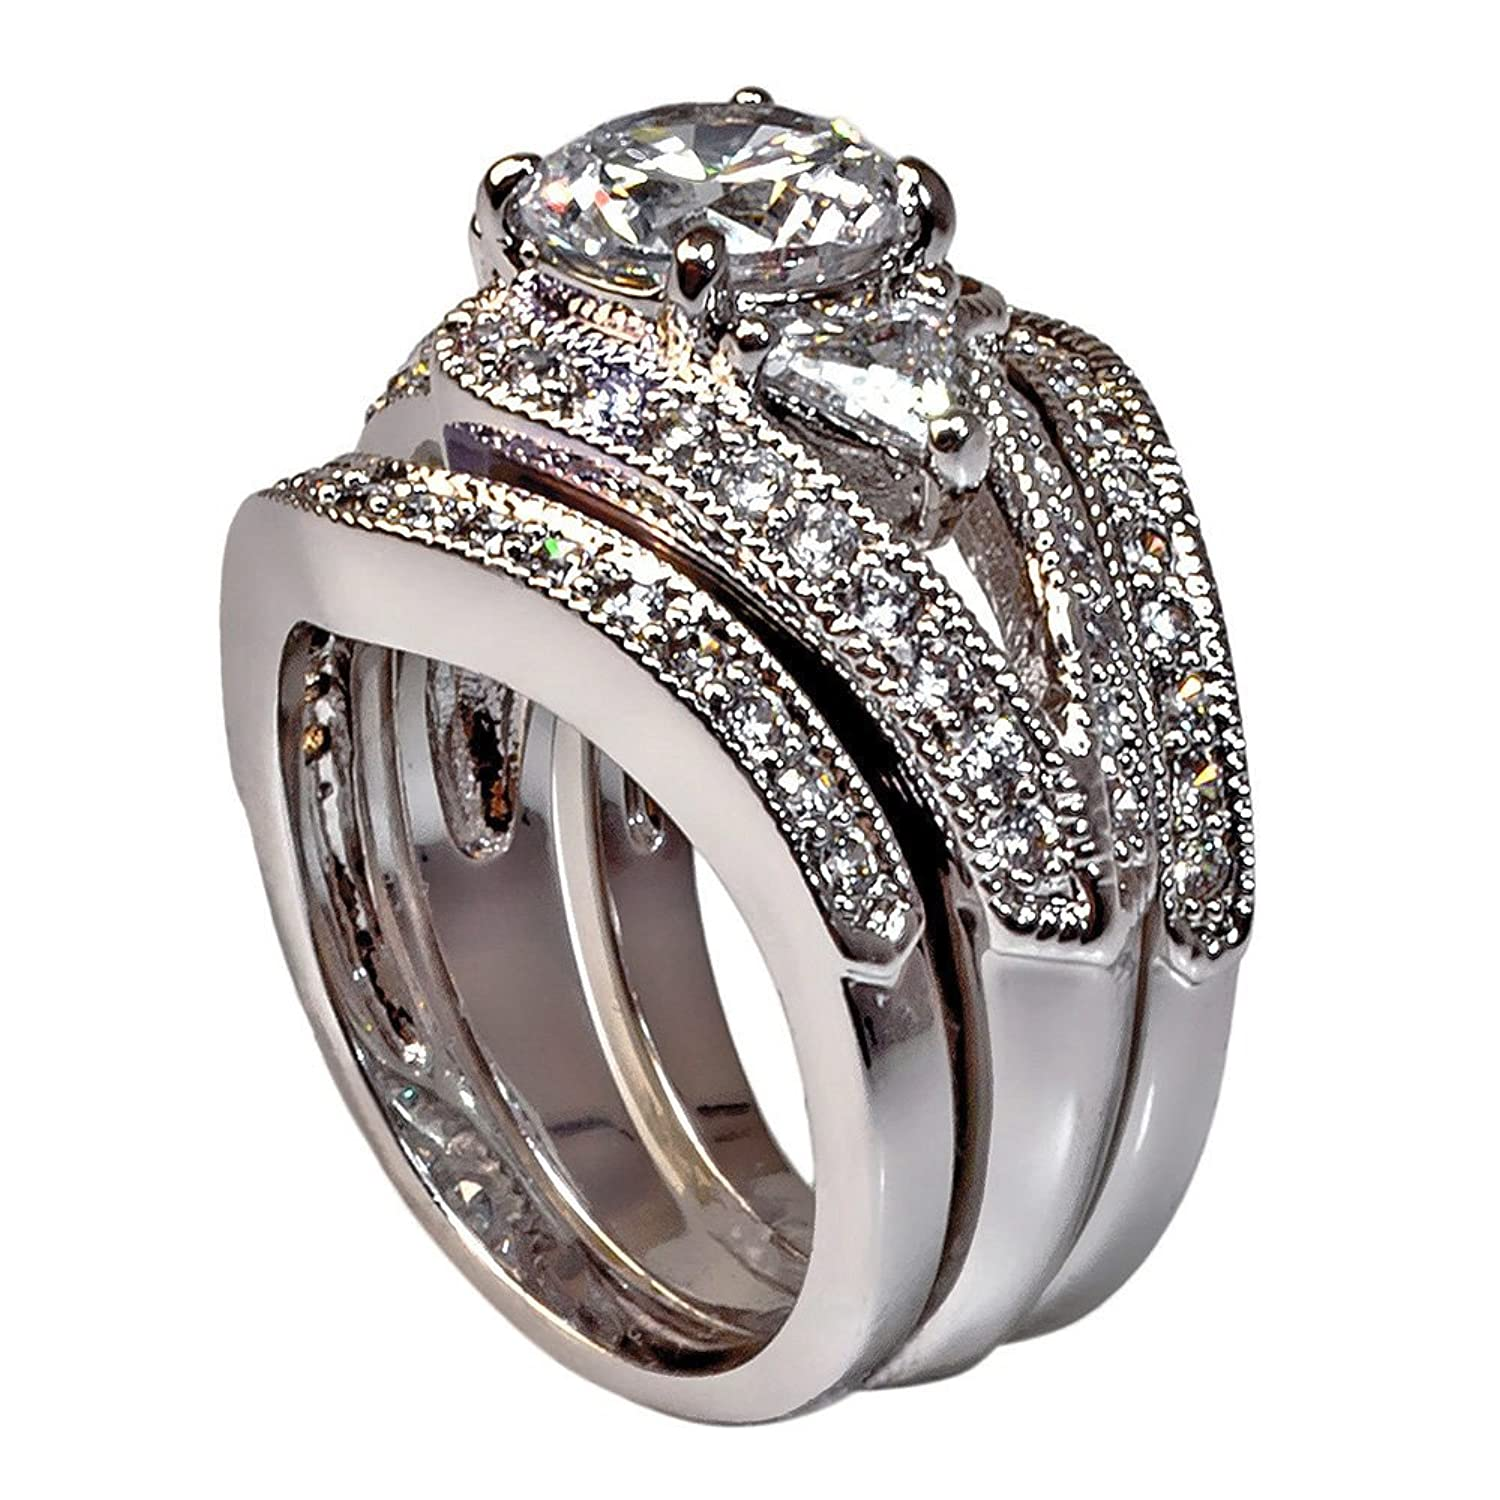 Vintage-style Round-shape and Triangle-shape with Milgrain Edging 3.28 Ct Cubic Zirconia Cz 3 Pc. Bridal Engagement Wedding Ring Set (Center Stone Is 2 Cts)